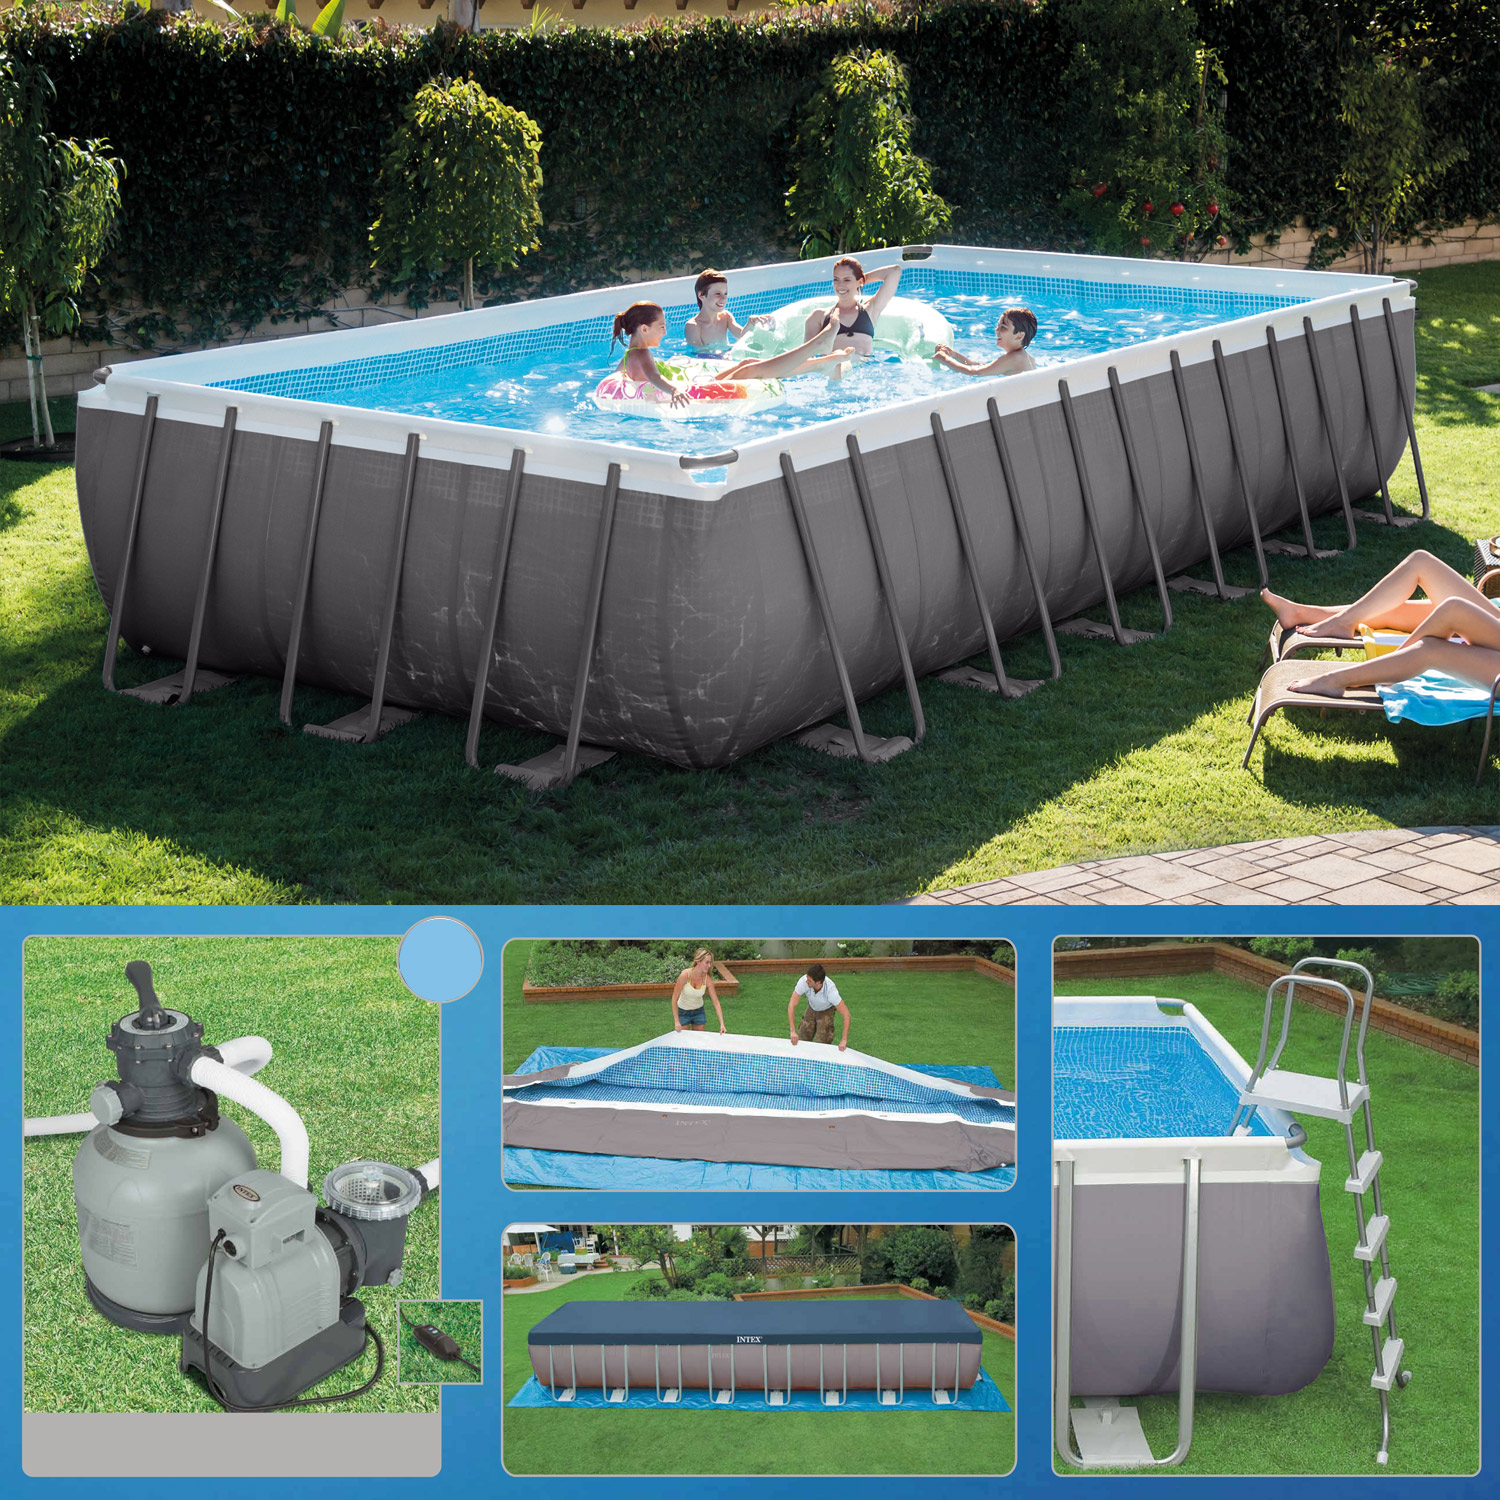 Intex 732 x 366 x 132 swimming pool rechteck stahlbecken for Garten pool intex